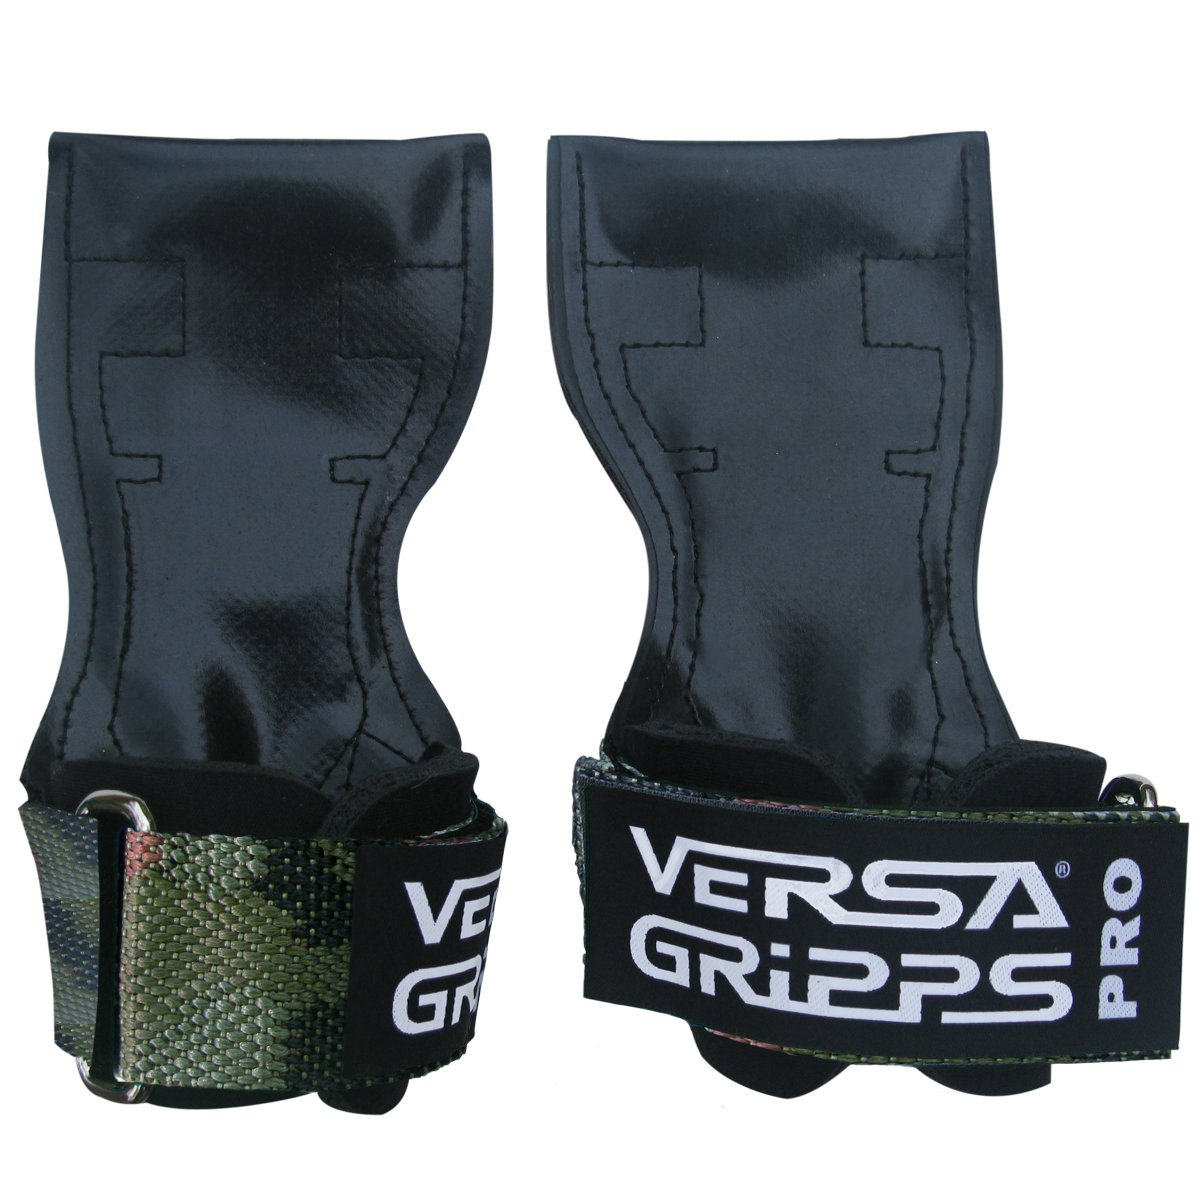 Versa Gripps PRO Authentic. The Best Training Accessory in the World. MADE IN THE USA (SM-Camo)